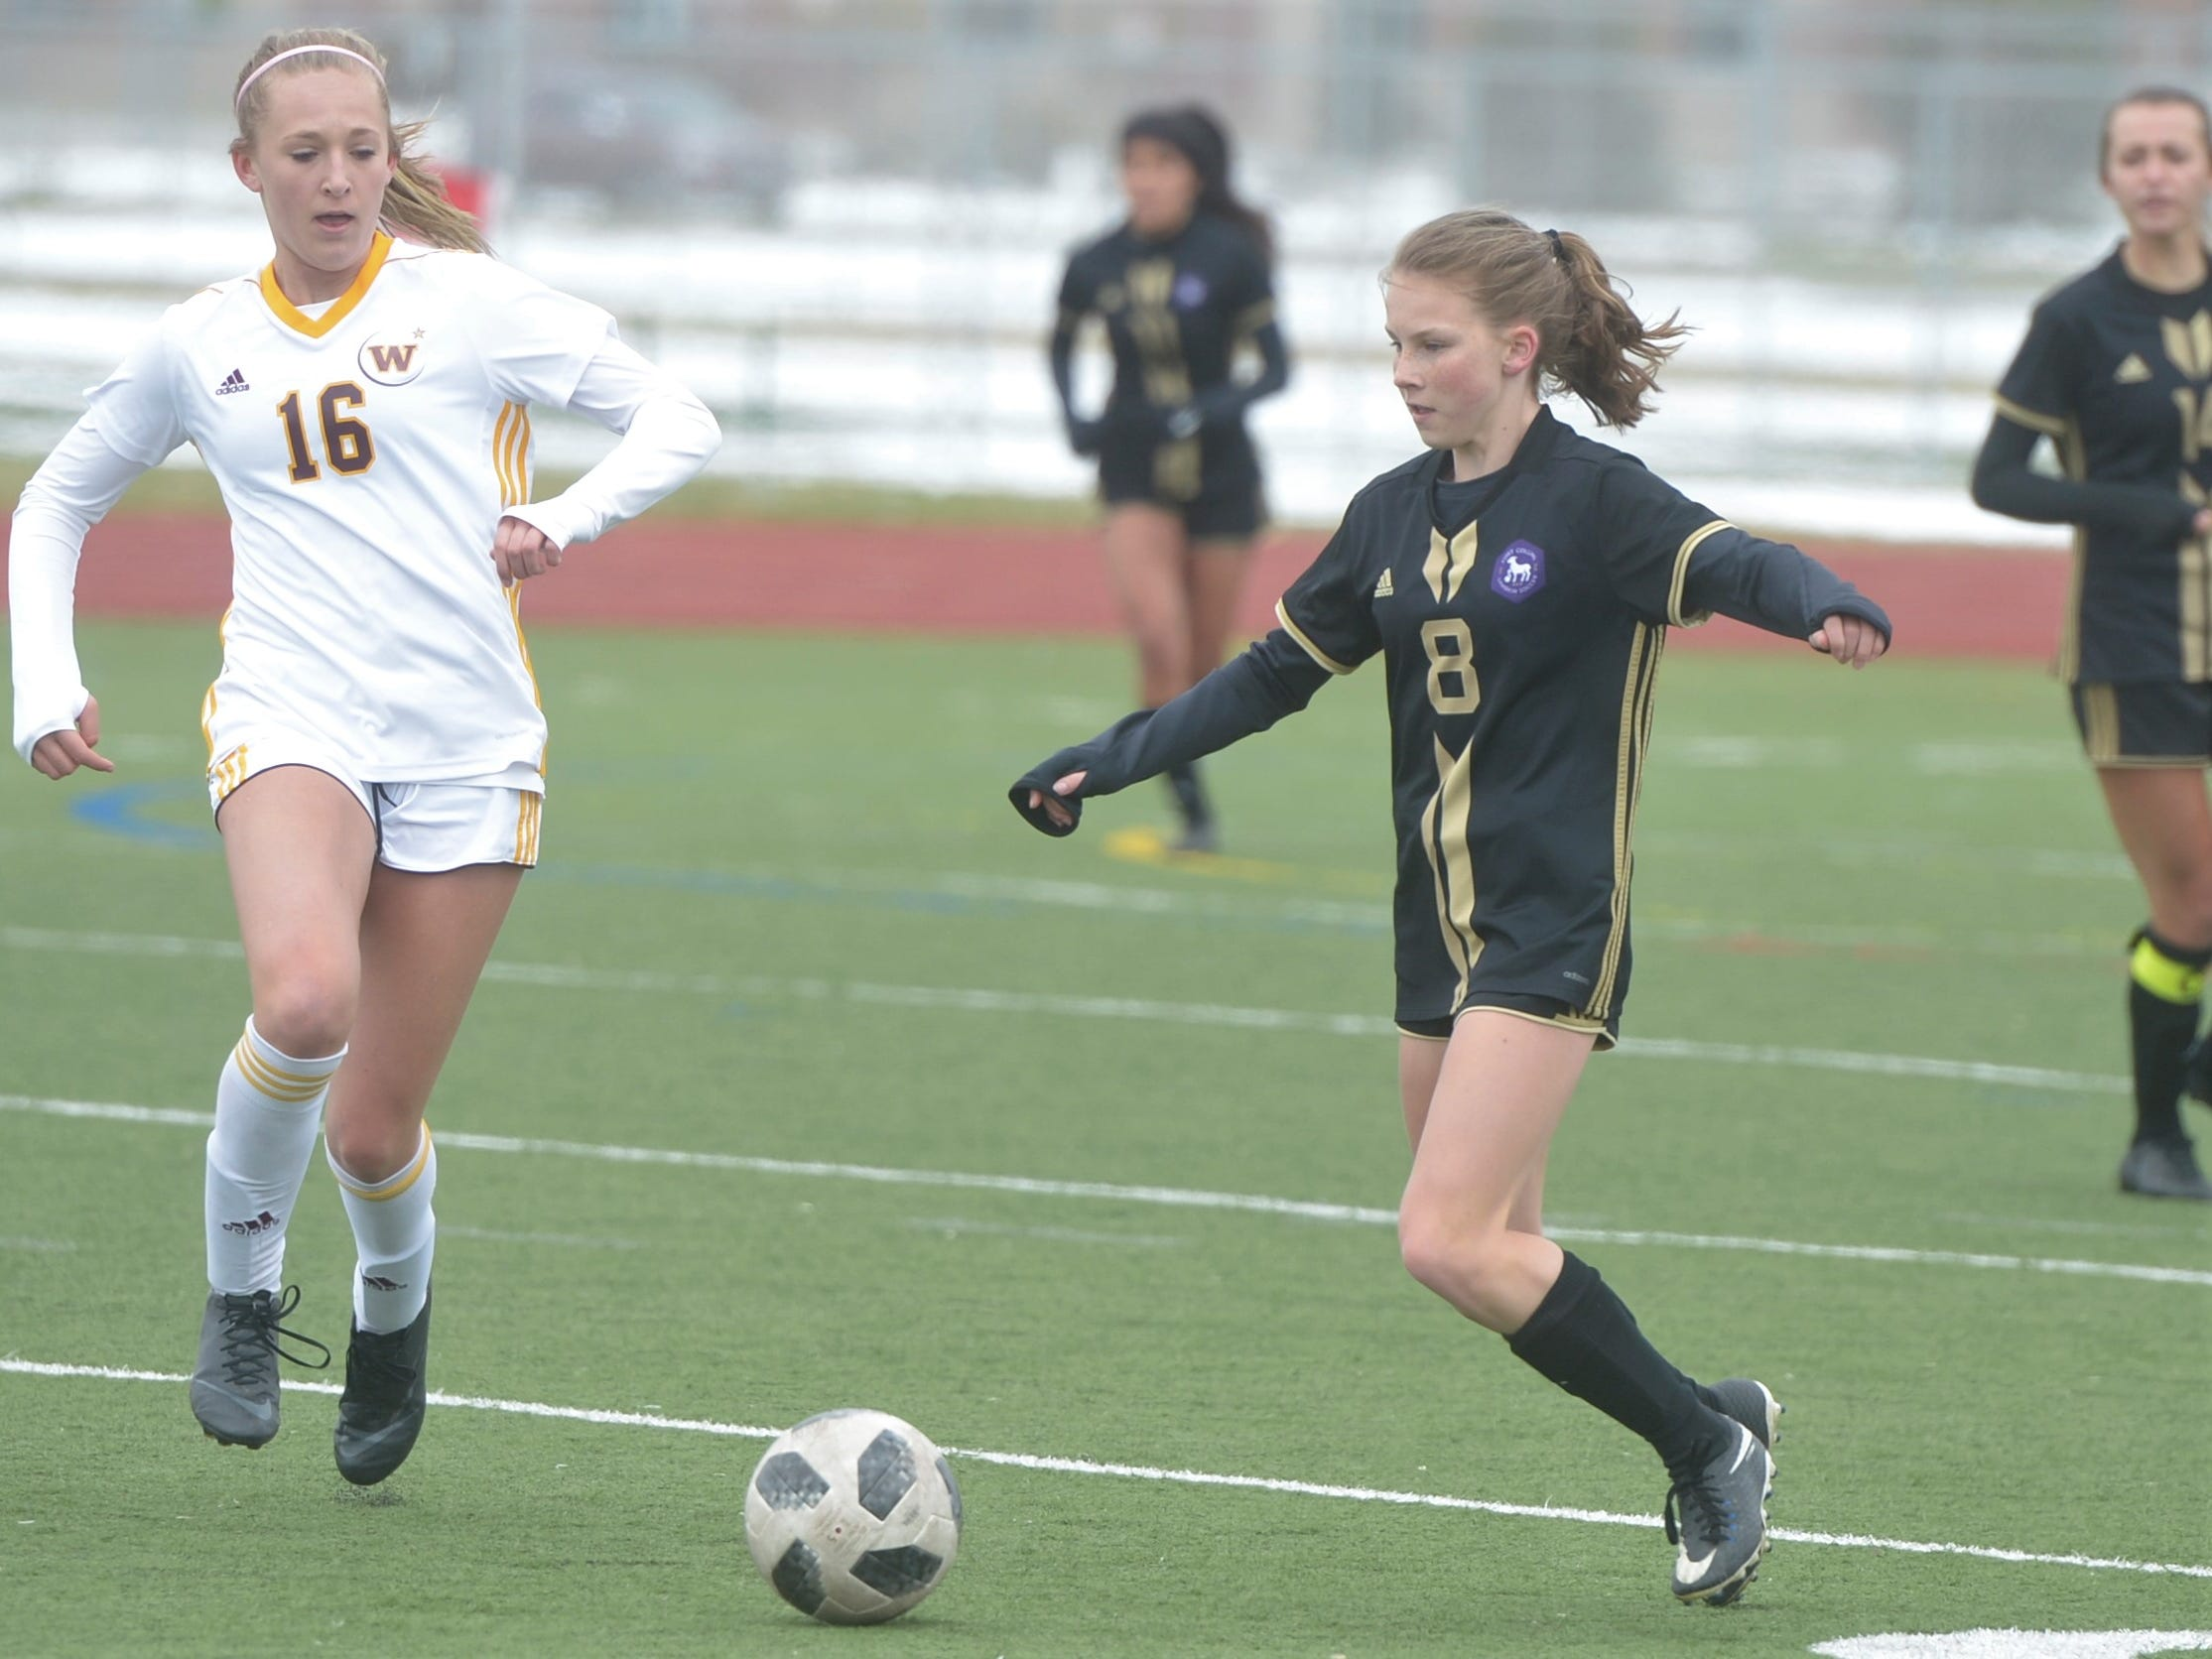 Fort Collins soccer player Annie Sullivan, right, tries to evade Windsor's Abby Bush during a game Saturday, April 13, 2019 at Fossil Ridge. Windsor won 3-0.